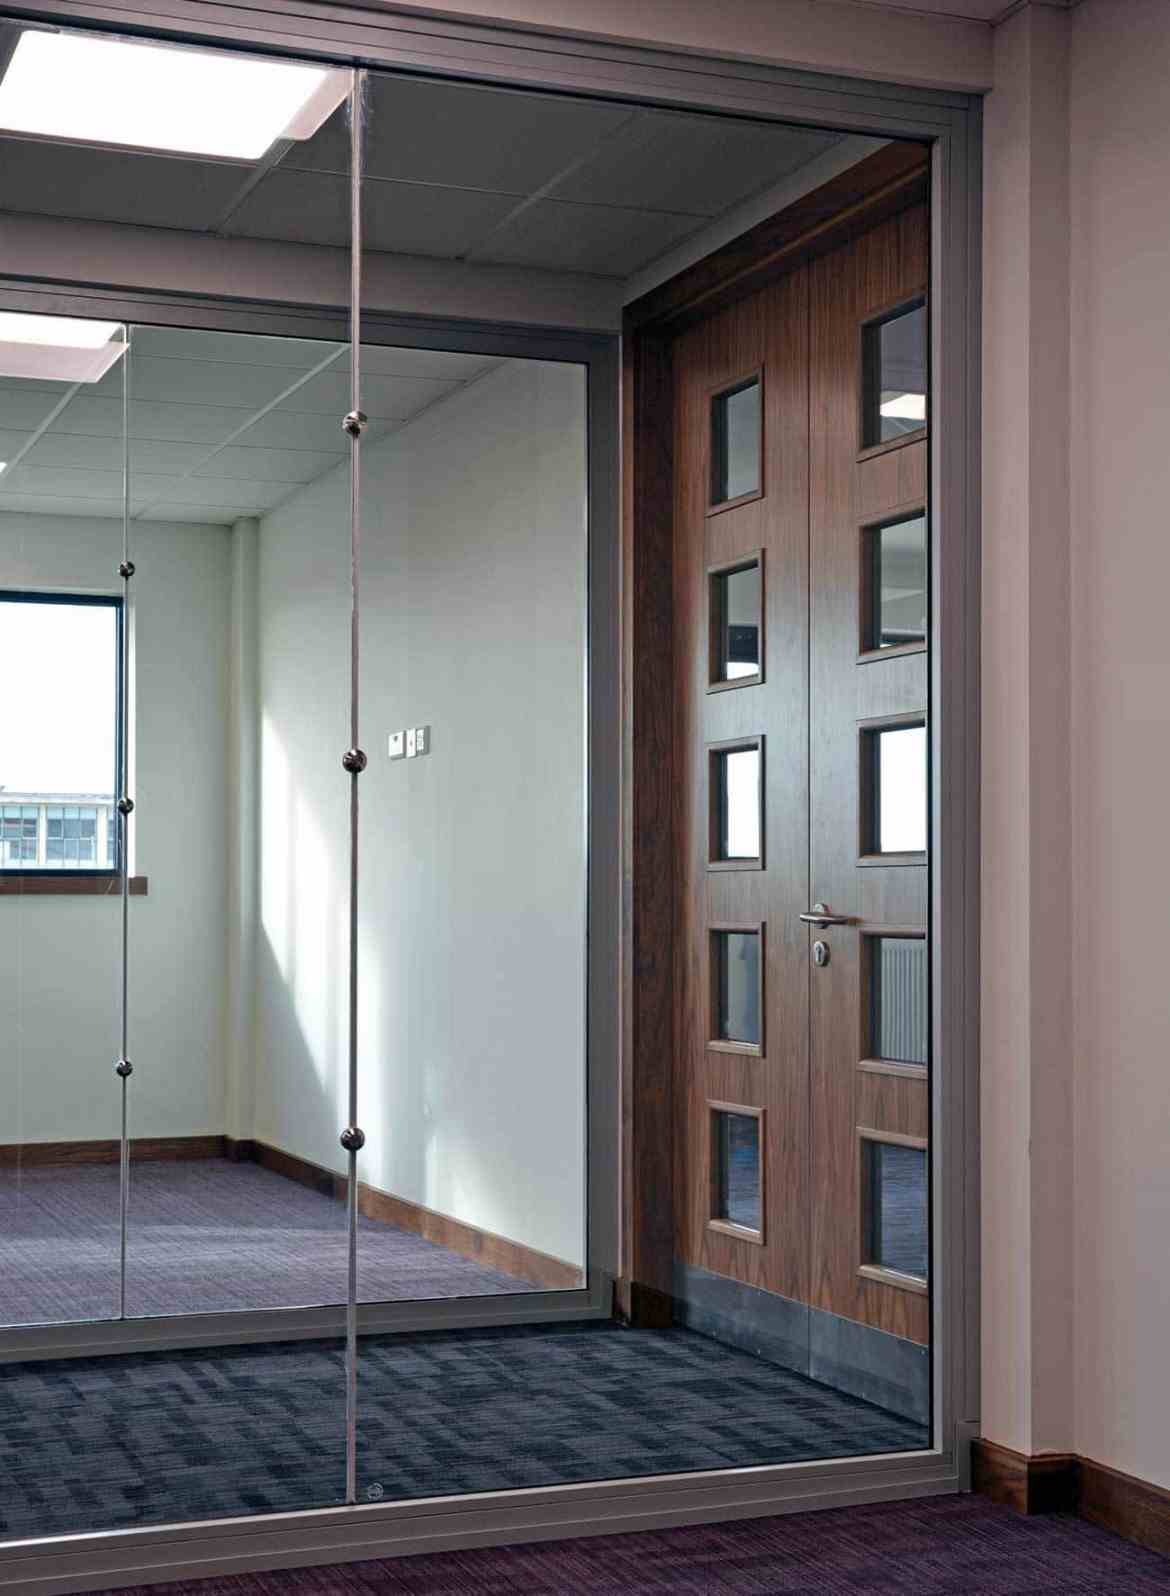 The Pilkington Pyroclear® Range is an integrity only fire-resistant glass which can also be used in butt-jointed applications (Pilkington Pyroclear® Line) with or without button fixings (shown in image).